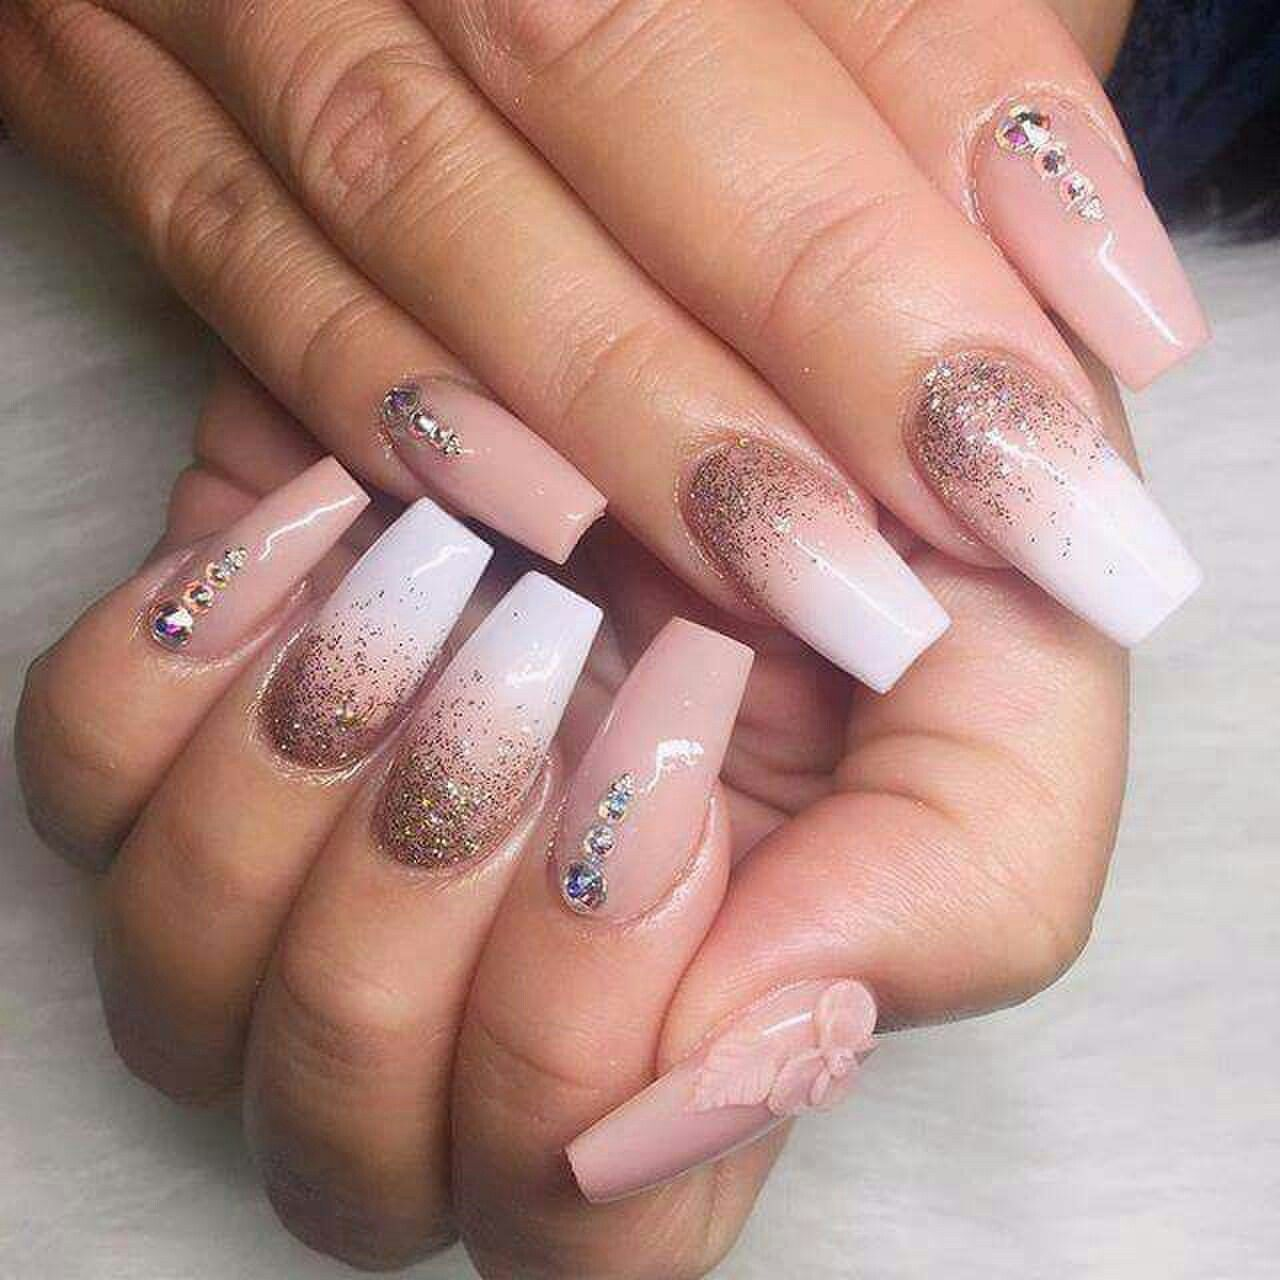 Manicure - Pin By Μάρθα Μ.Μ On Nails Pinterest Nail Nail And Manicure